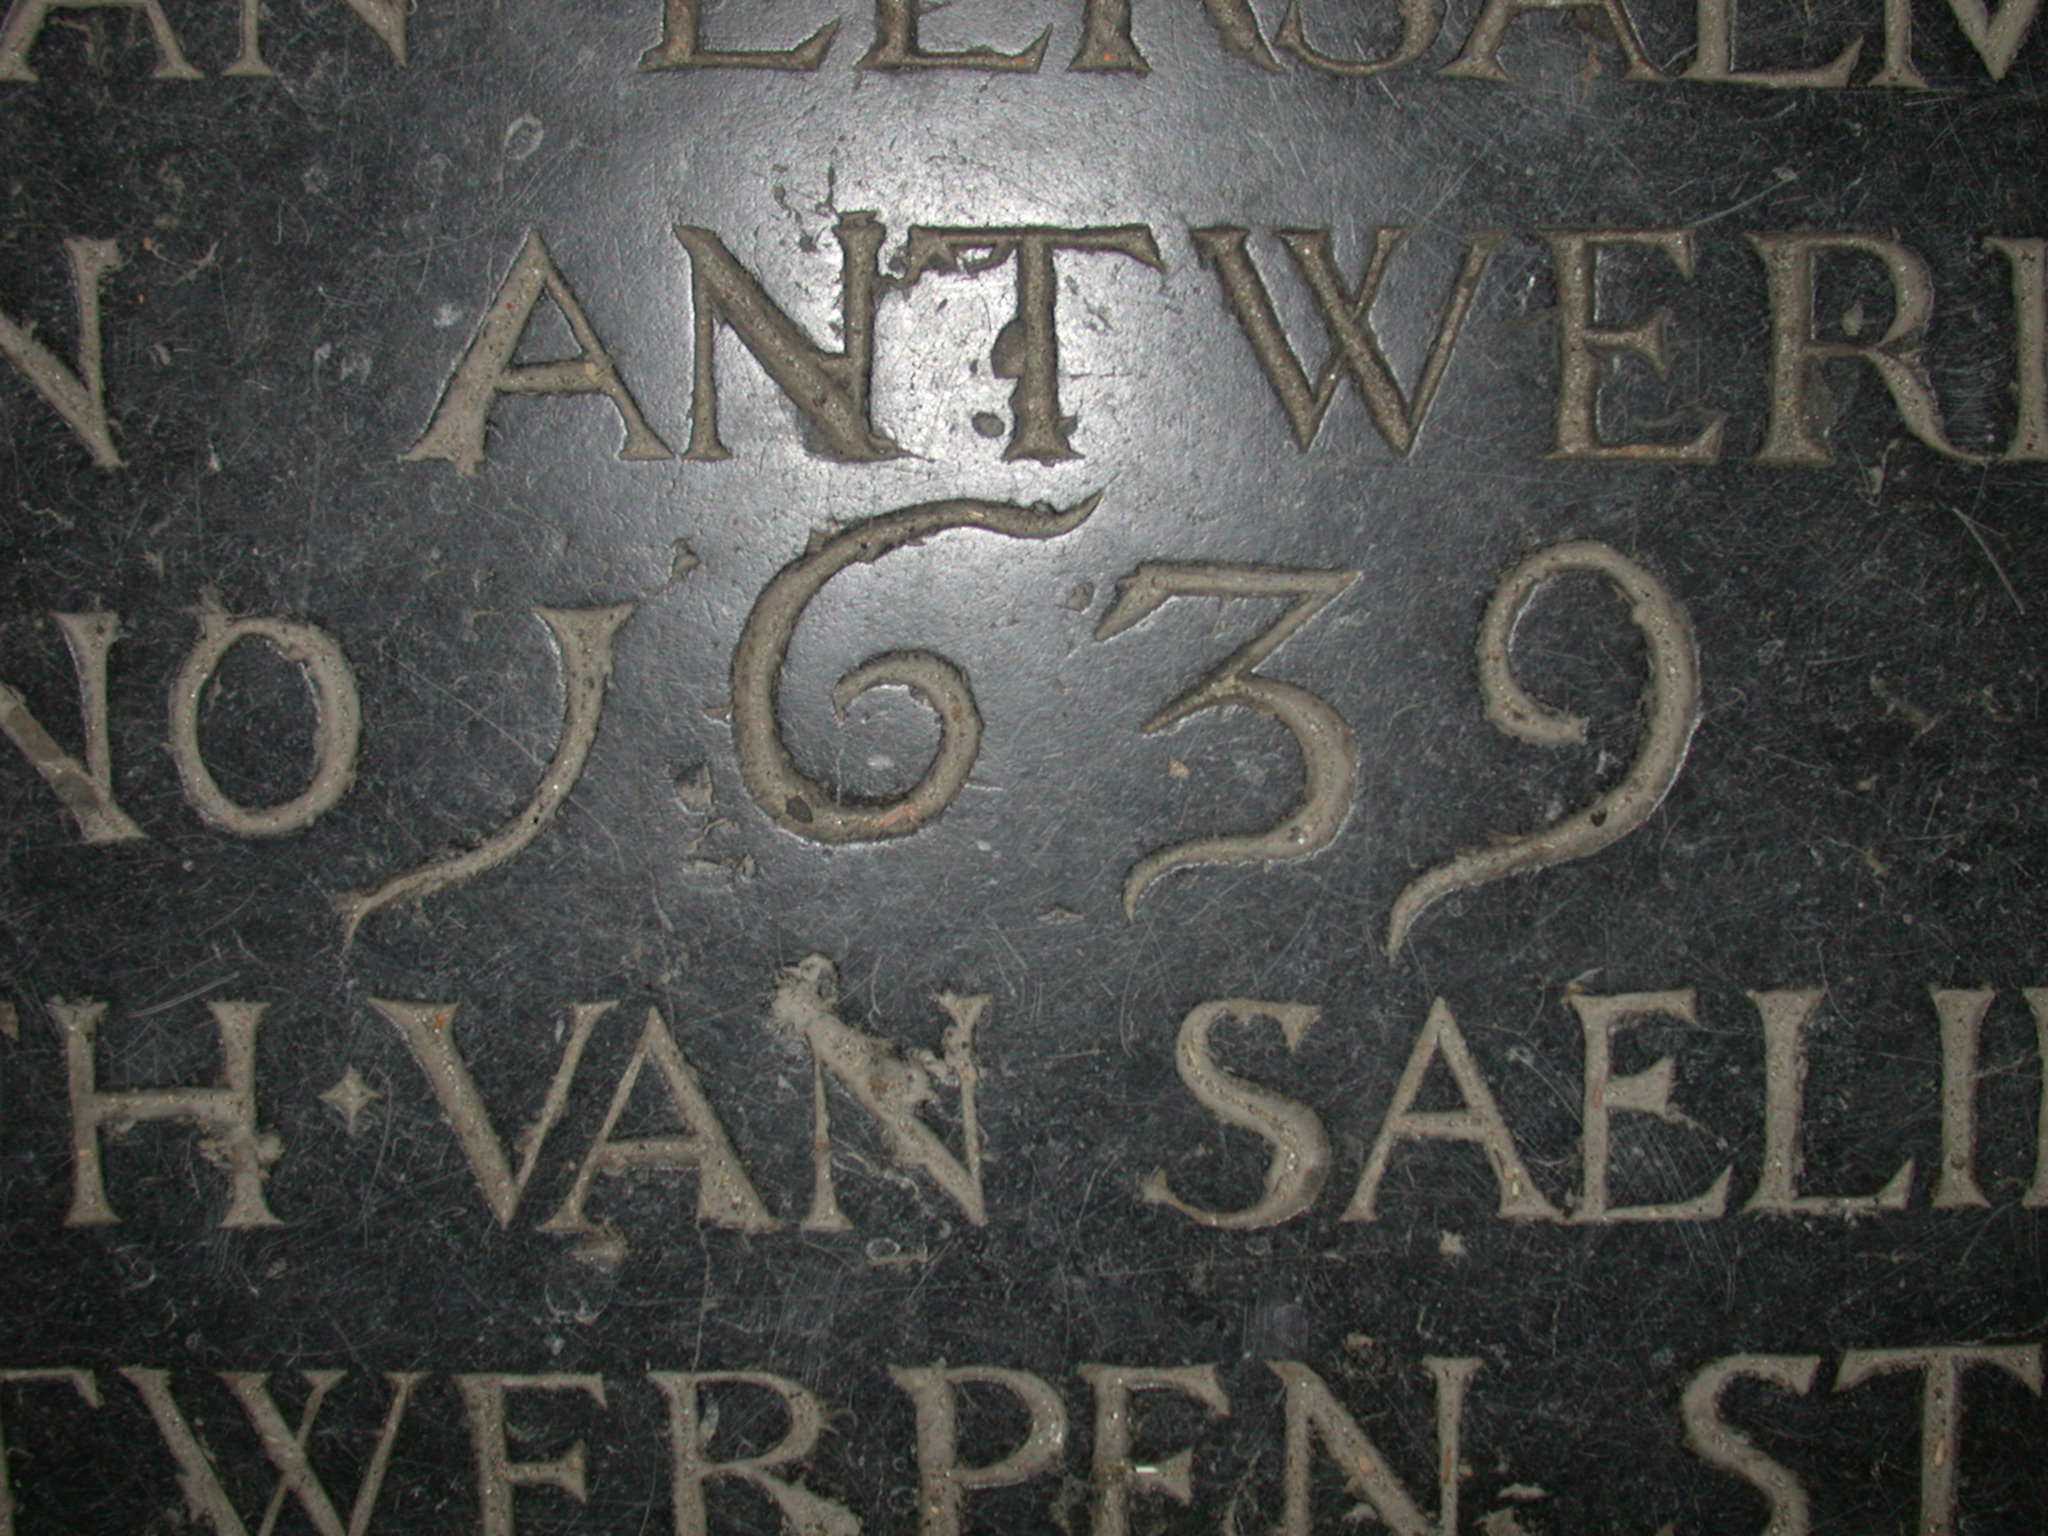 Marble In Antwerpen : Image*after : photos : inscription stone marble tombstone 1639 antwerpen